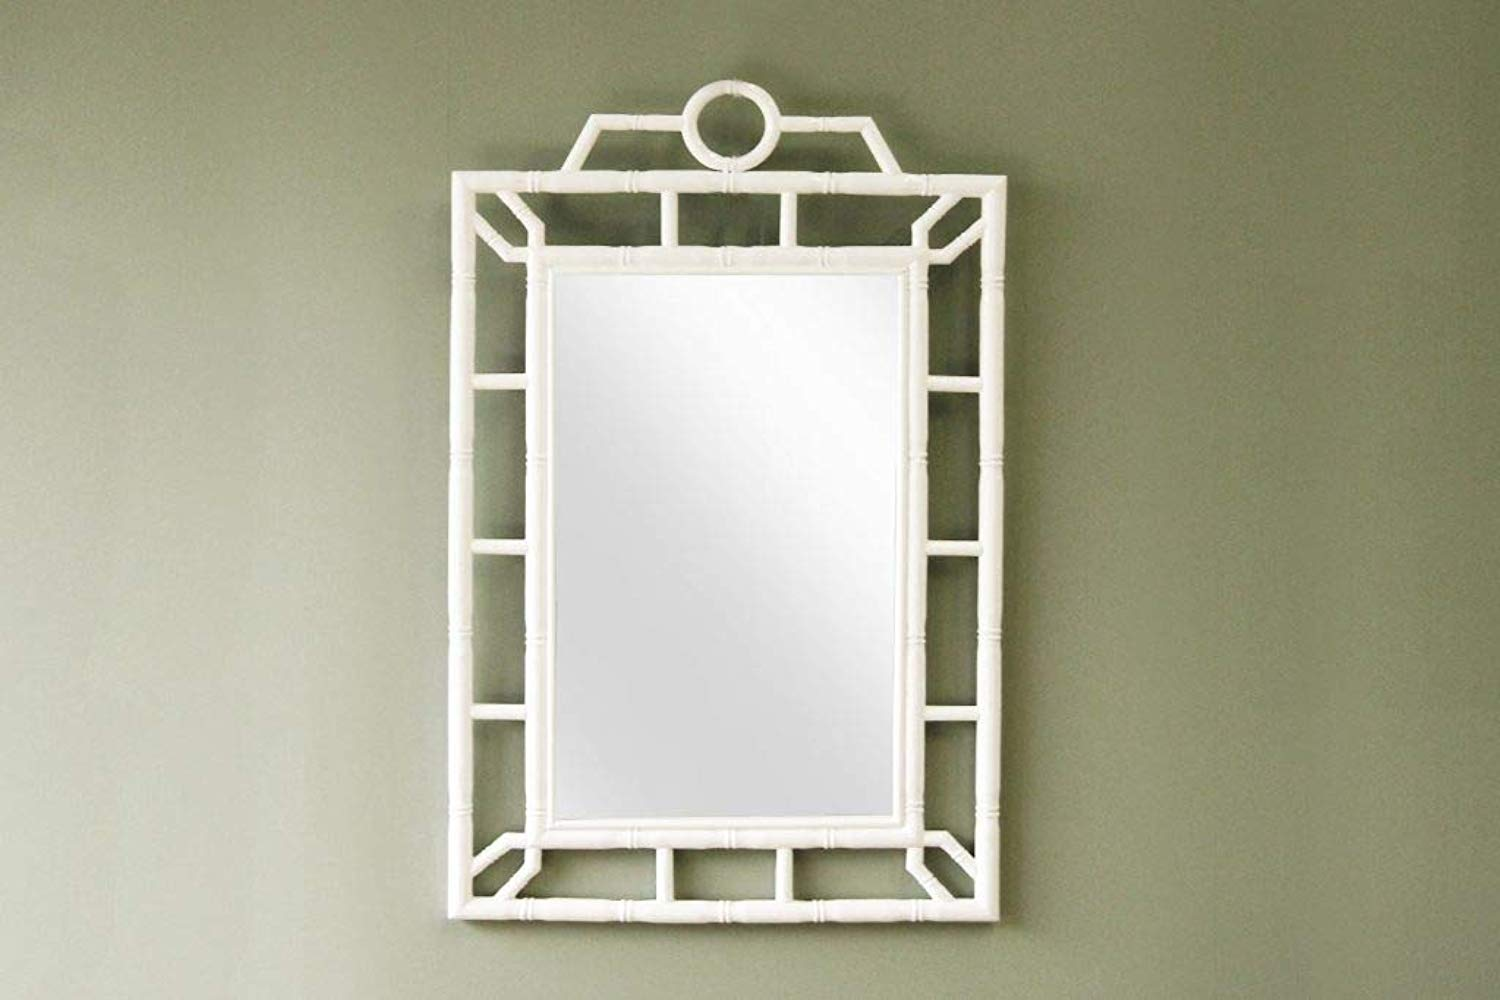 IRA White Frame Bathroom Vanity Living Room Bedroom Mirror - IRA Furniture